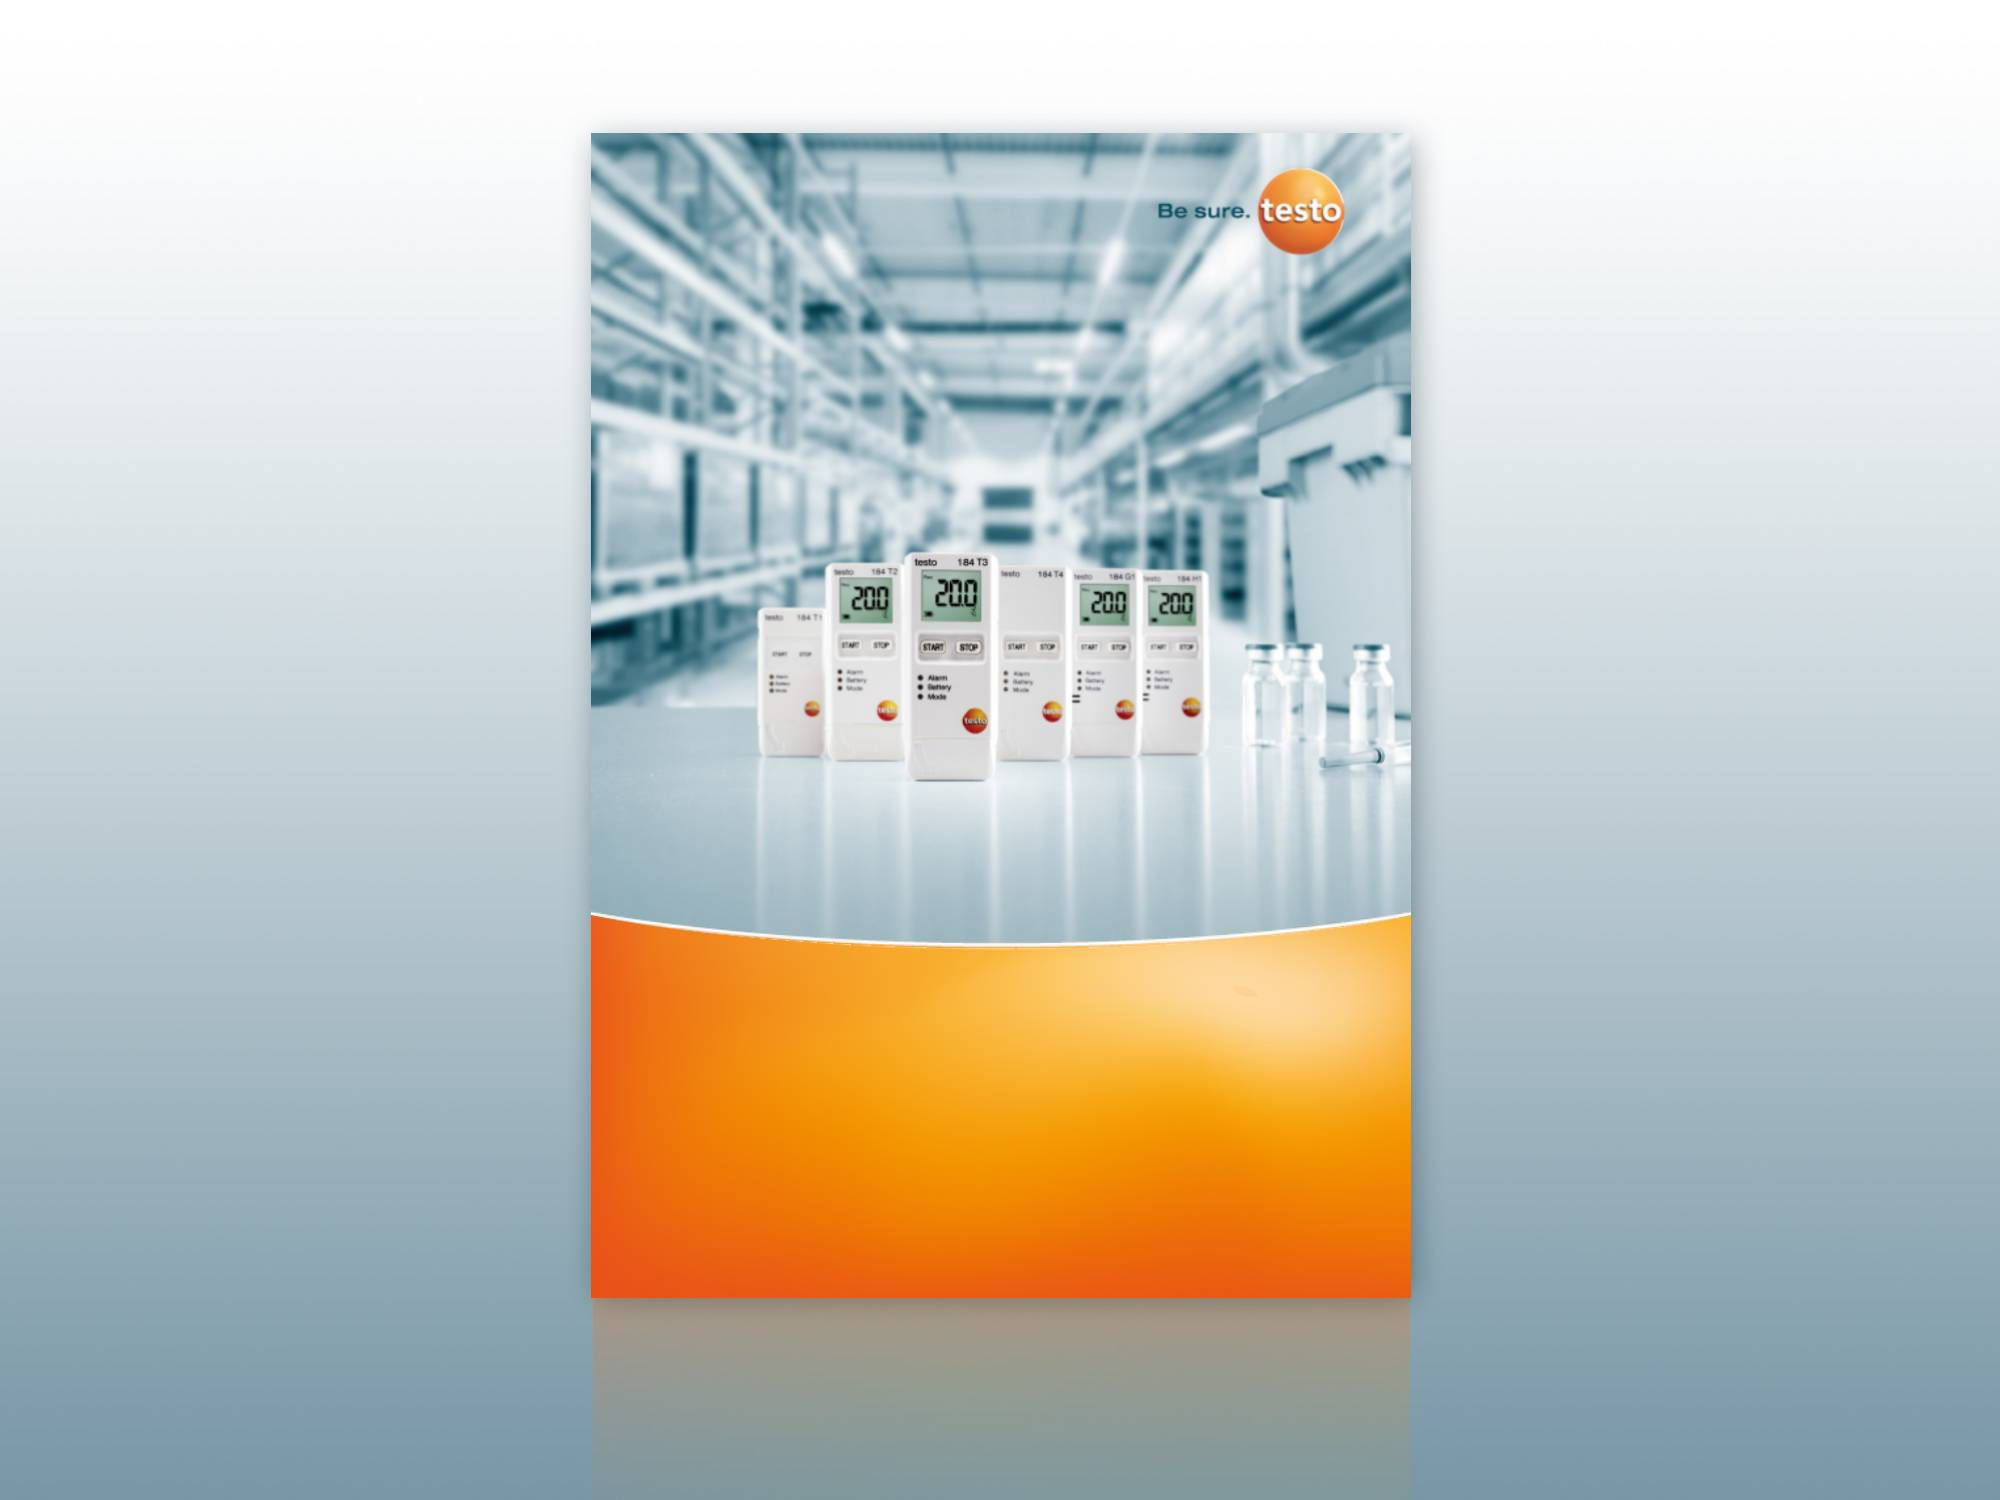 Data logger testo 184: Climate monitoring and data documentation when transporting pharmaceuticals